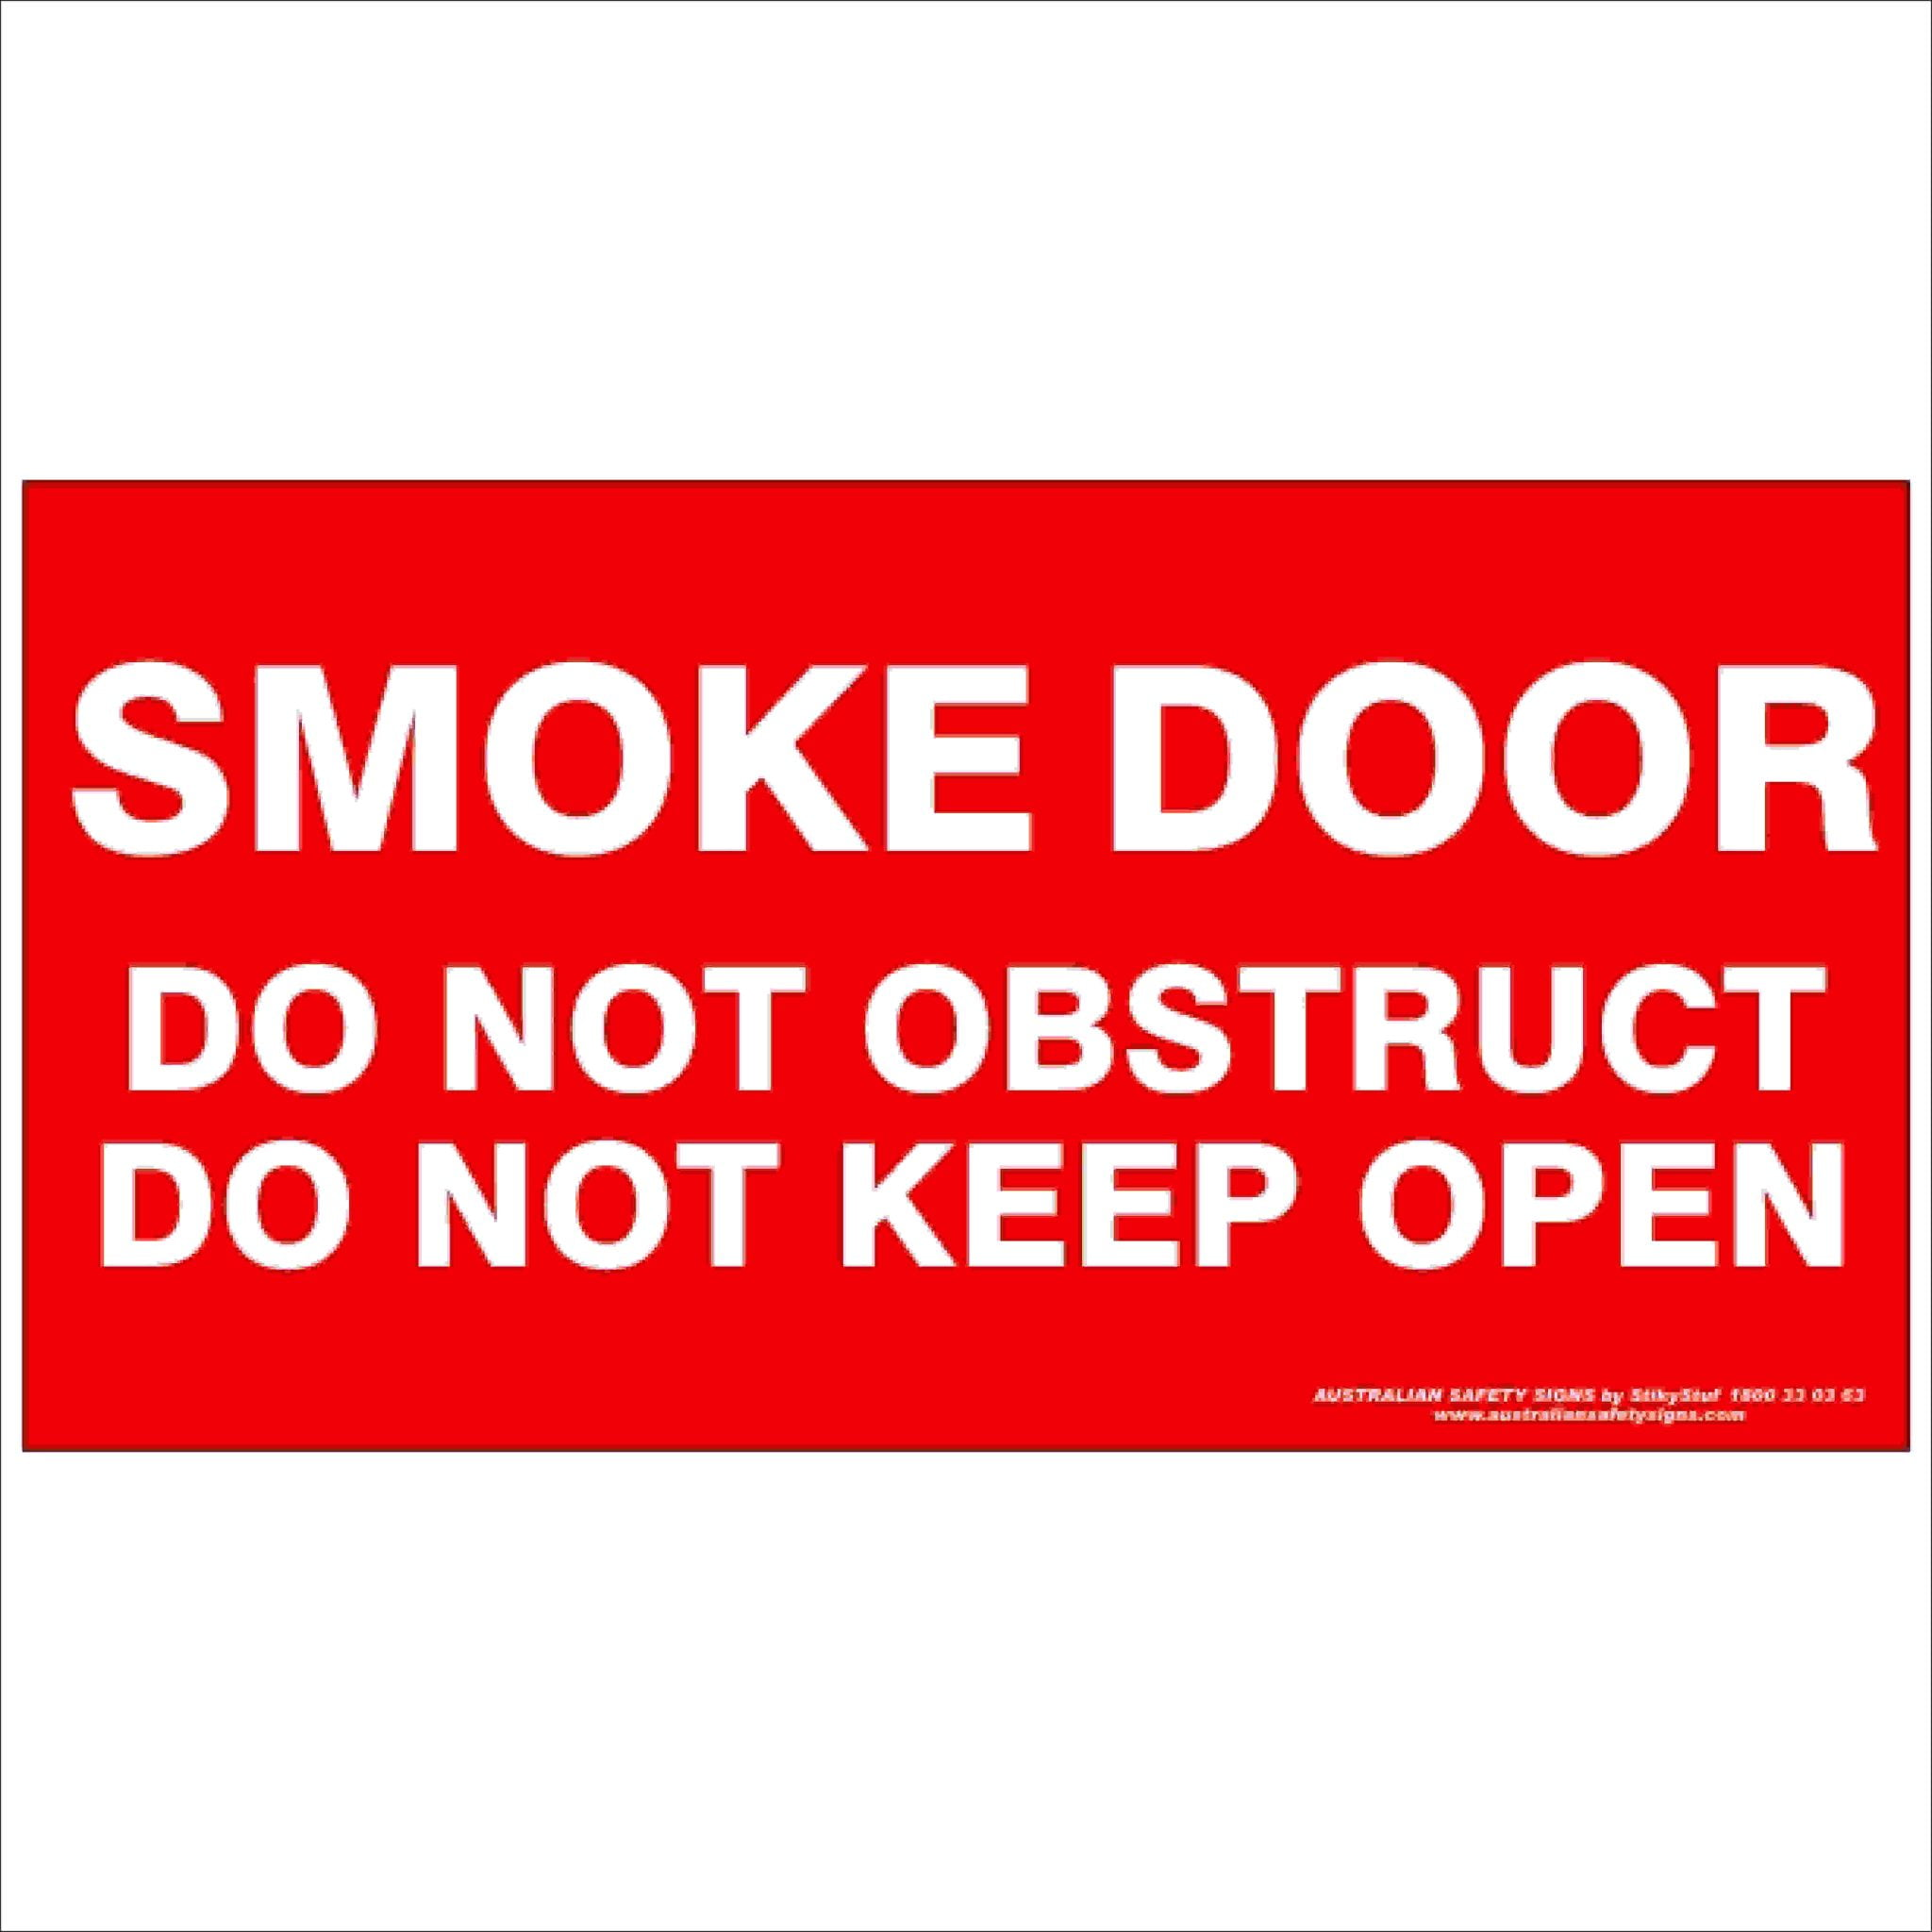 Fire Safety Signs SMOKE DOOR DO NOT OBSTRUCT DO NOT KEEP OPEN 350